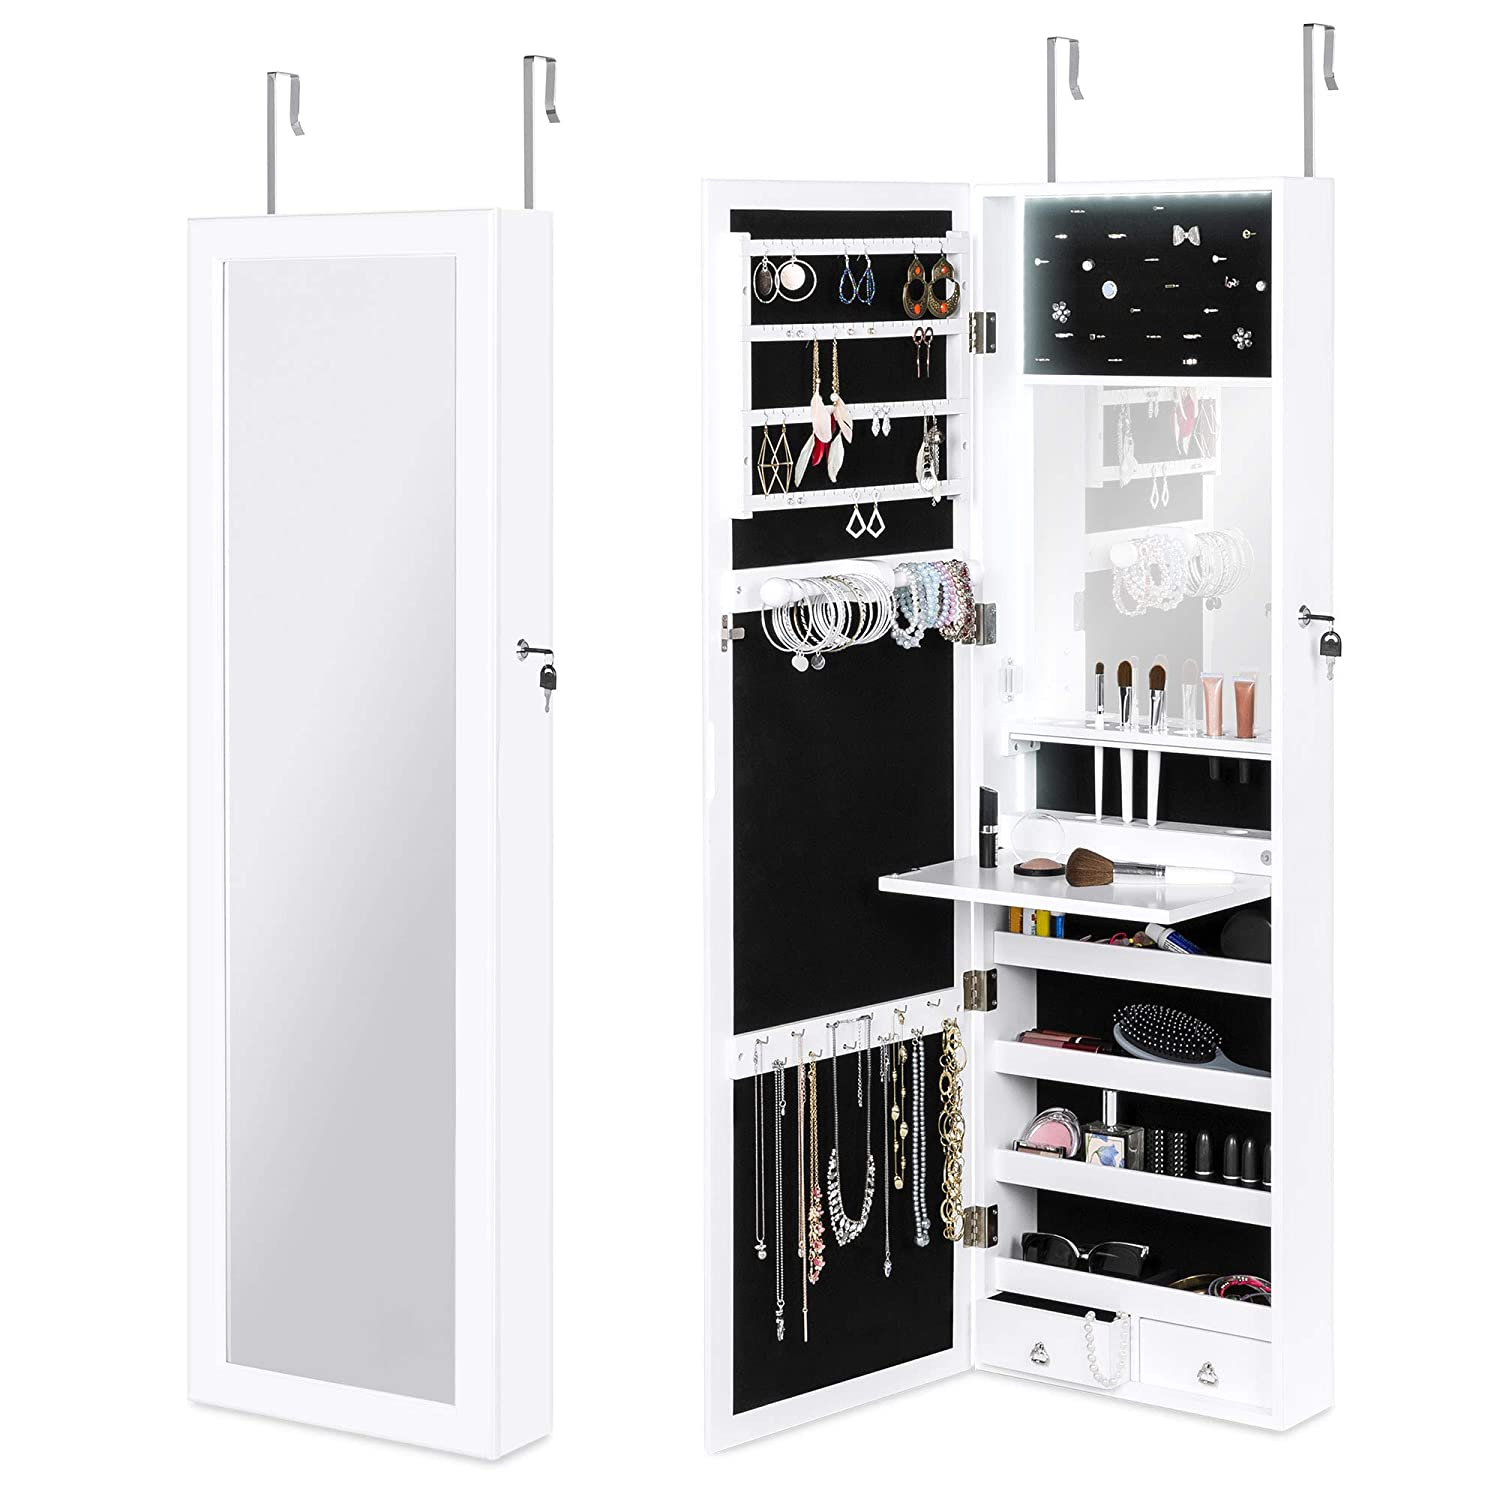 Best Choice Products Hanging Mirror Jewelry Armoire Cabinet for Door or Wall Mount w/LED Lights, Cosmetics Tray, Lock